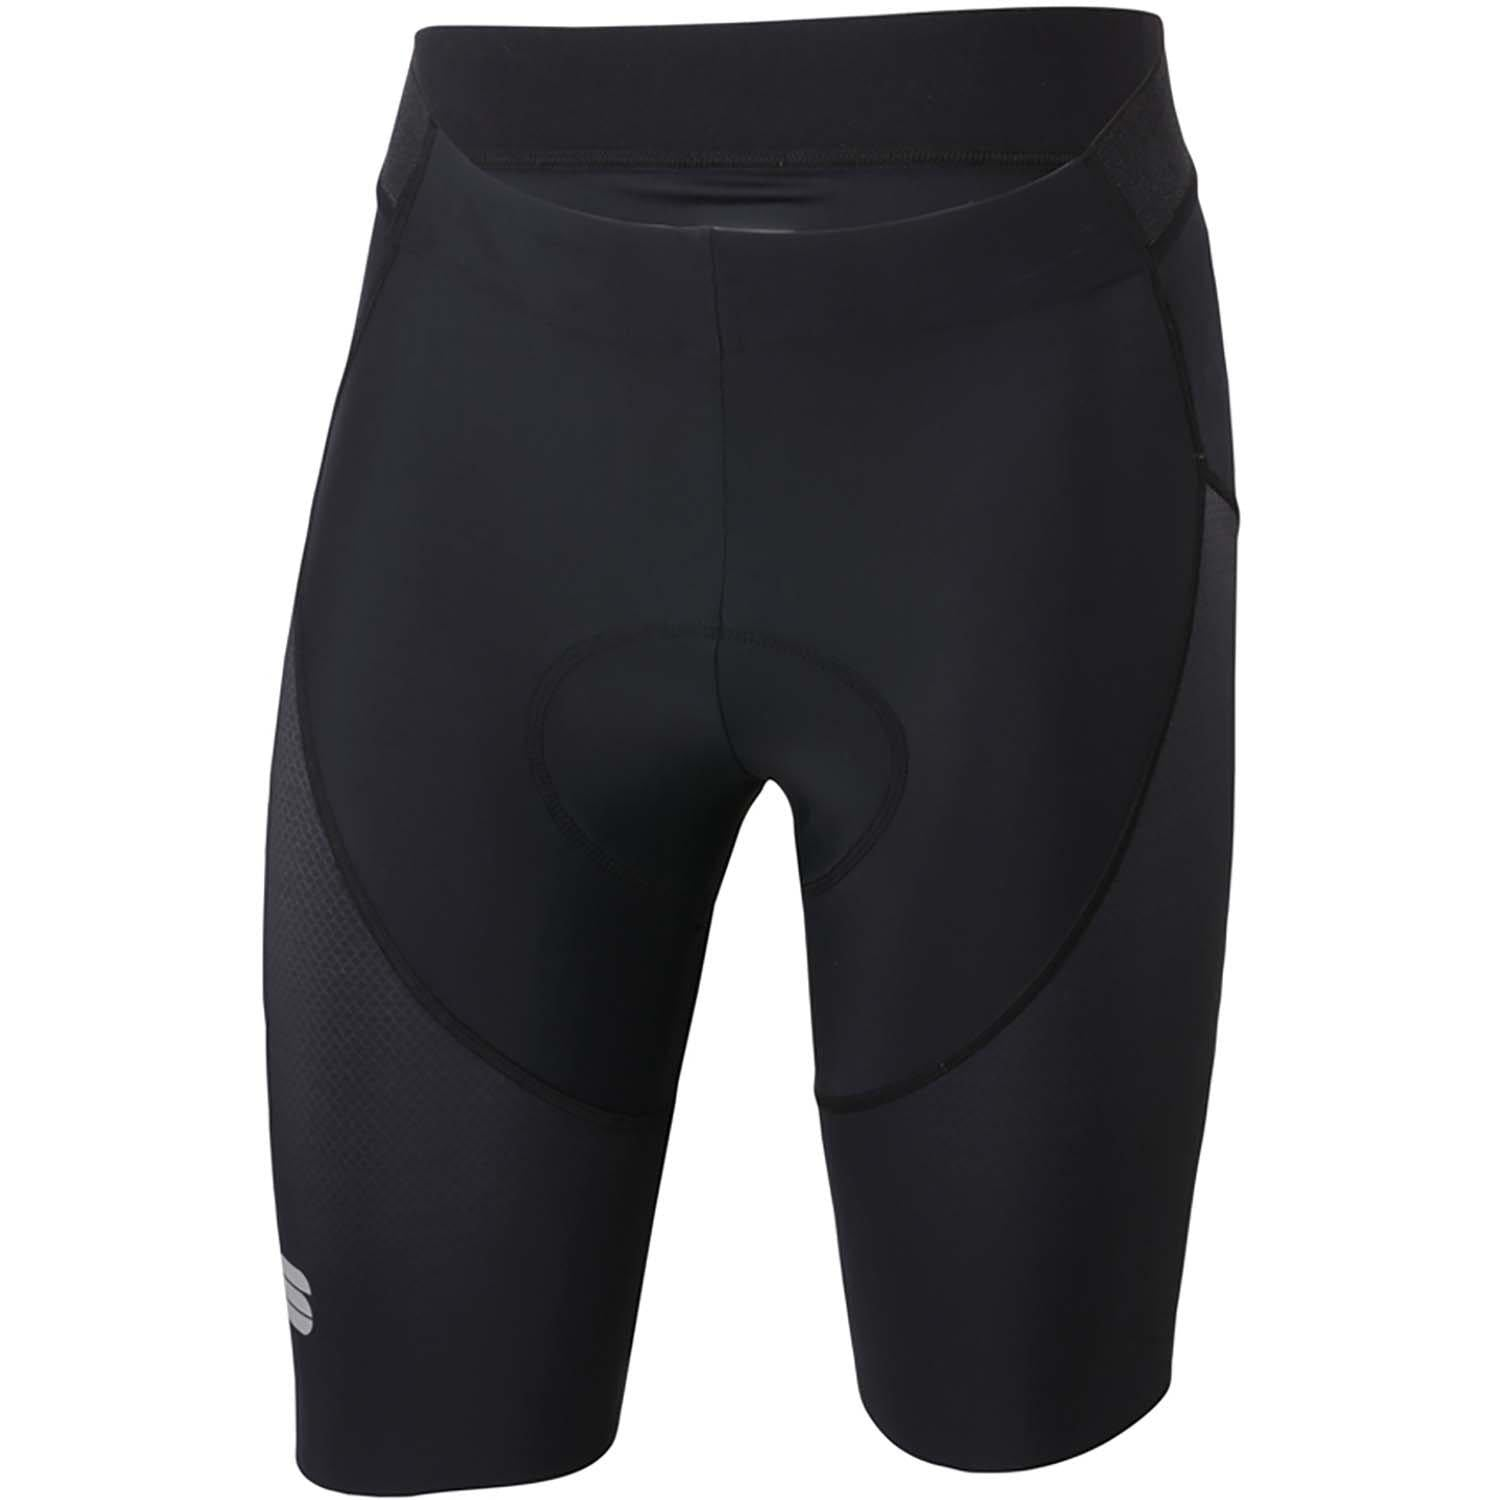 Sportful-Sportful In Liner Shorts-Black-S-SF019970022-saddleback-elite-performance-cycling